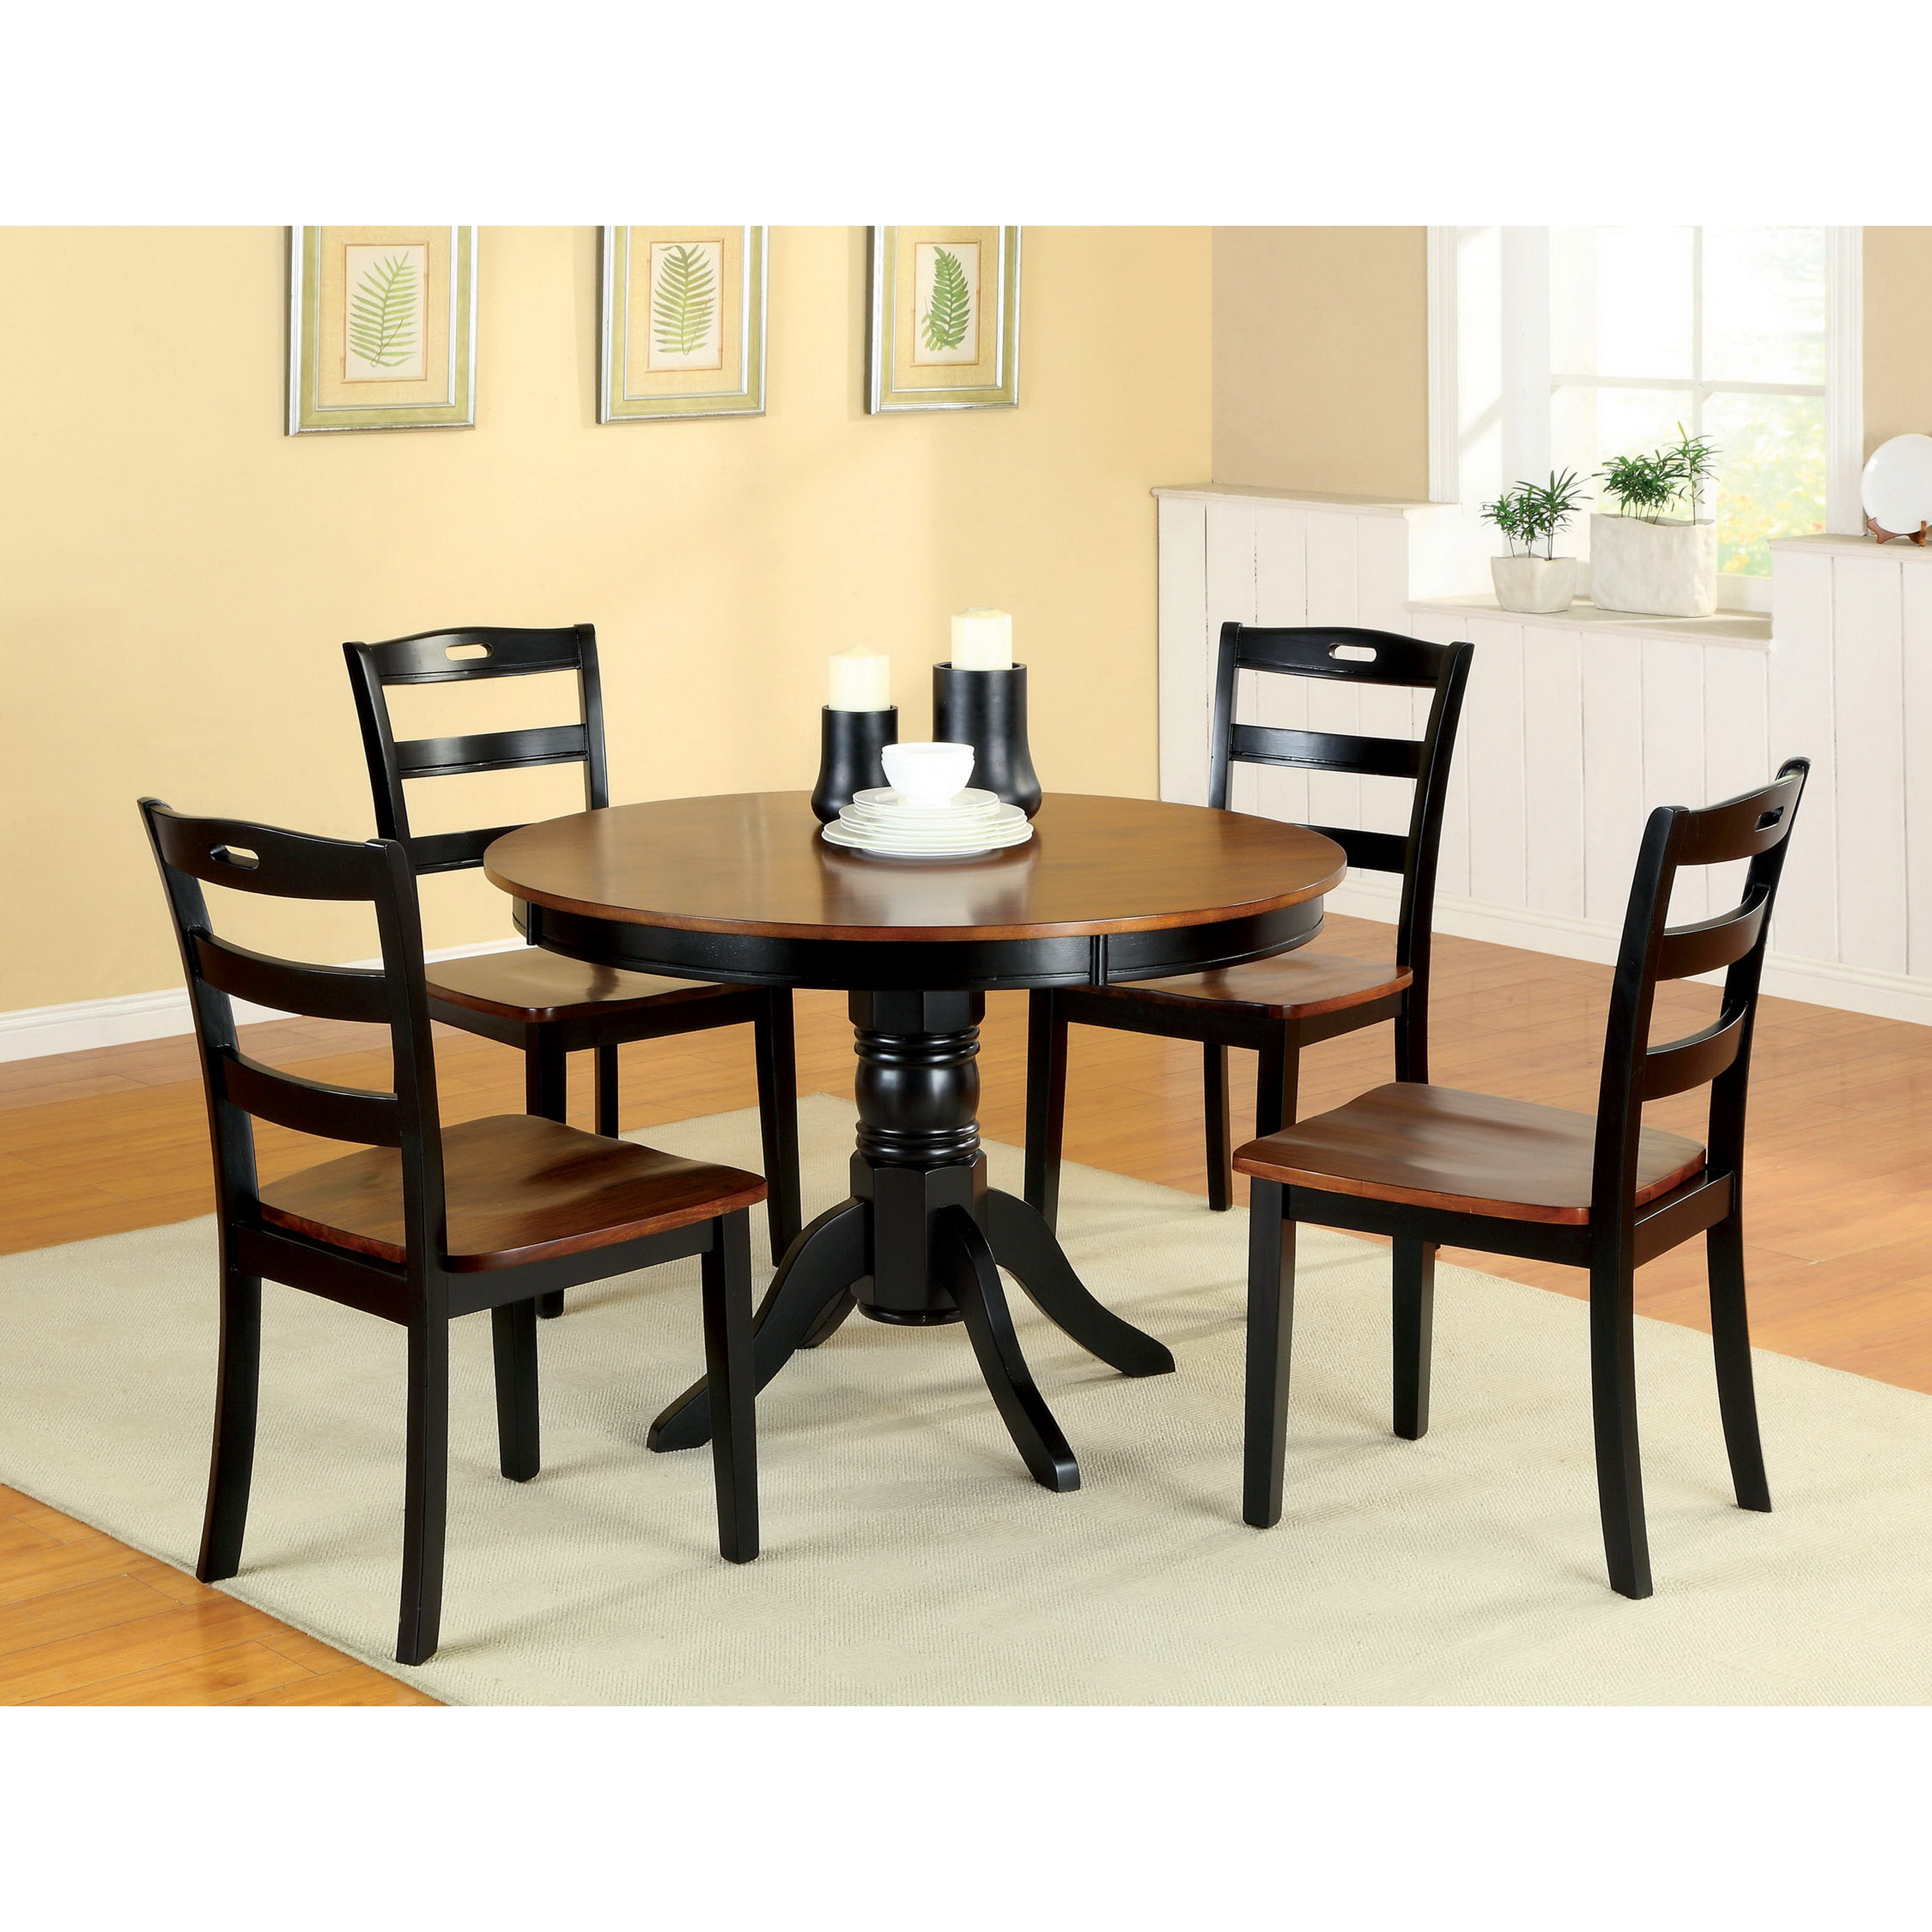 Furniture of America Zendell Two-tone 5-piece Dining Set ...